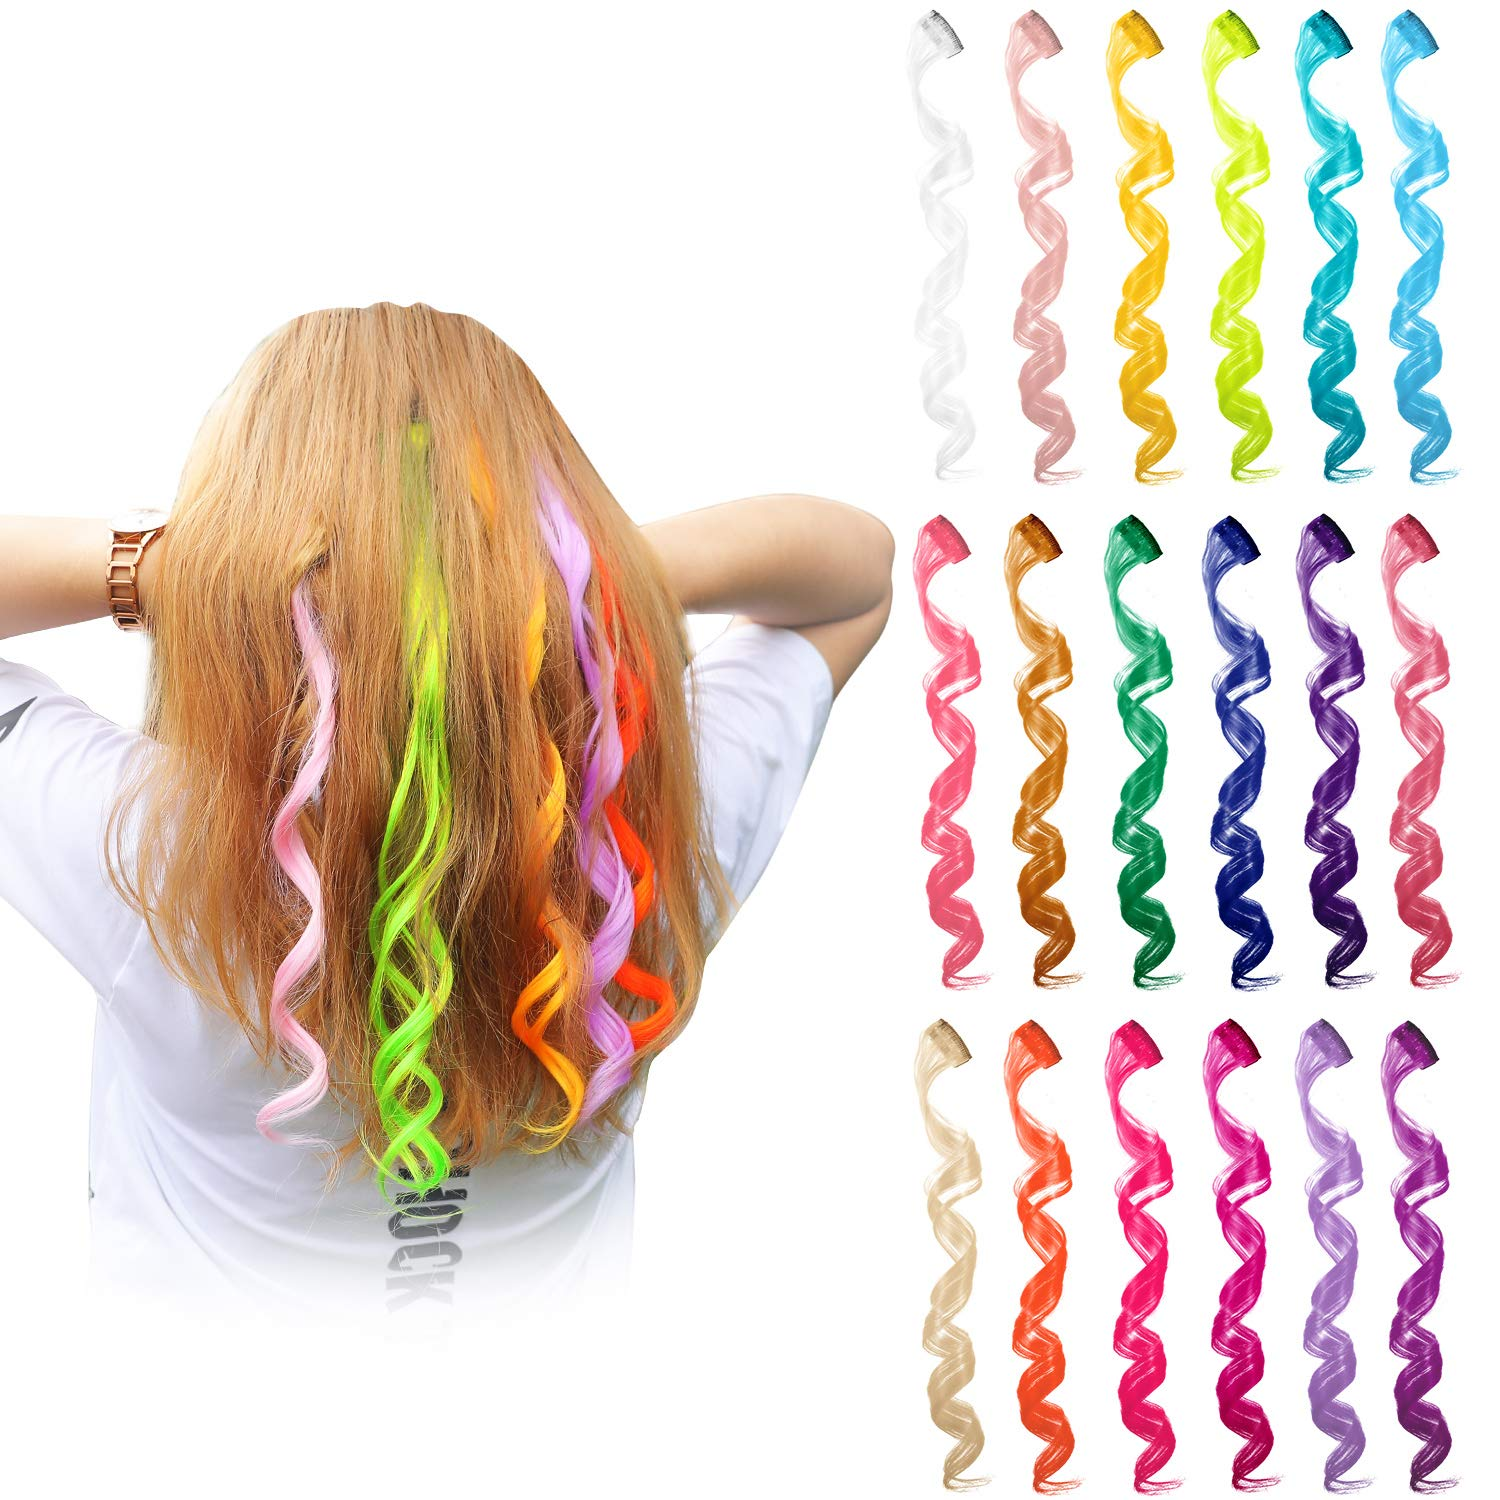 24 Pieces 24 Colors Multi-Colors Clip on in Hair Extensions Hair Pieces Colored Party Highlights DIY Hair Accessories Extensions 20 Inches Long Hair for Girls Women (24 Colors, Curly Wave) by Blulu